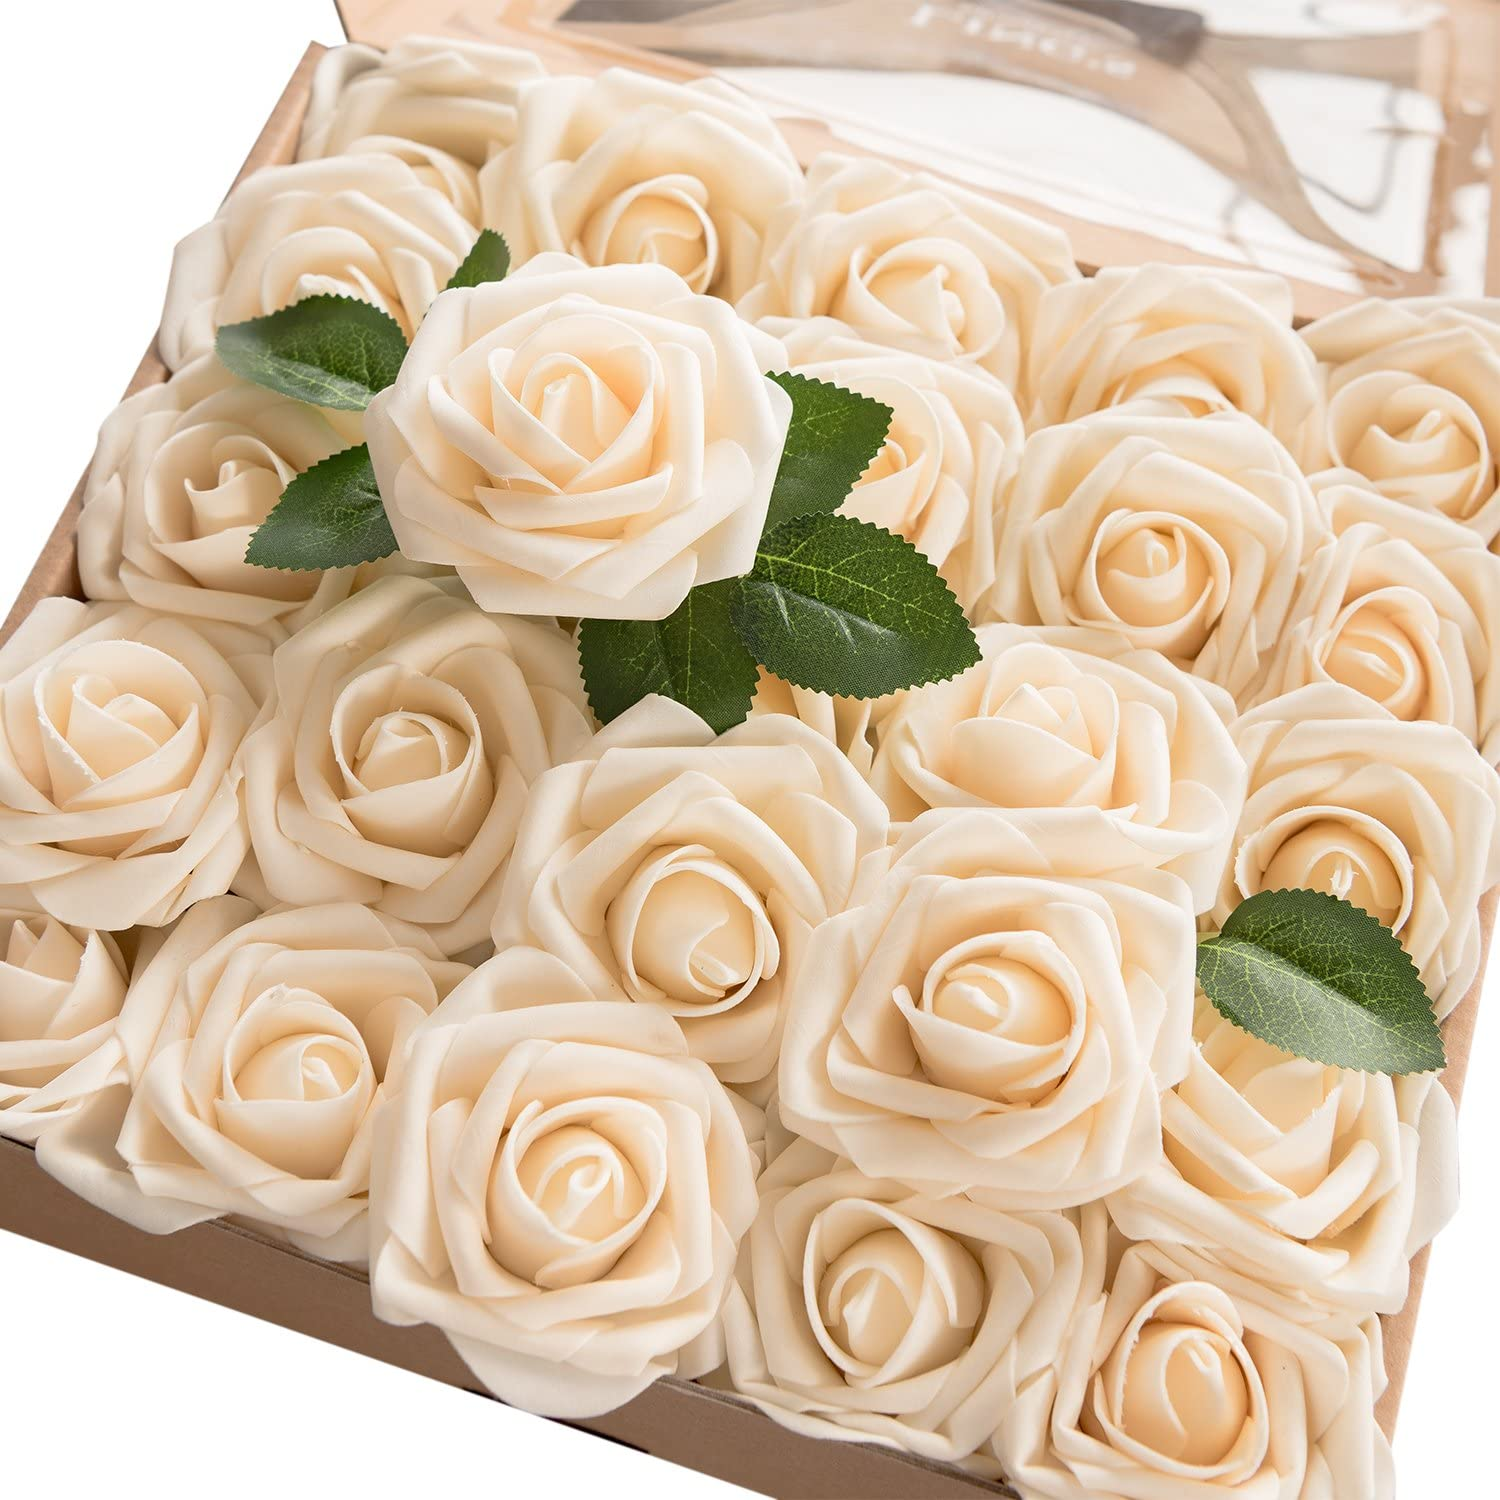 Ling's moment Artificial Flowers 25pcs Real Looking Cream Fake Roses w/Stem for DIY Wedding Bouquets Centerpieces Bridal Shower Party Home Decorations